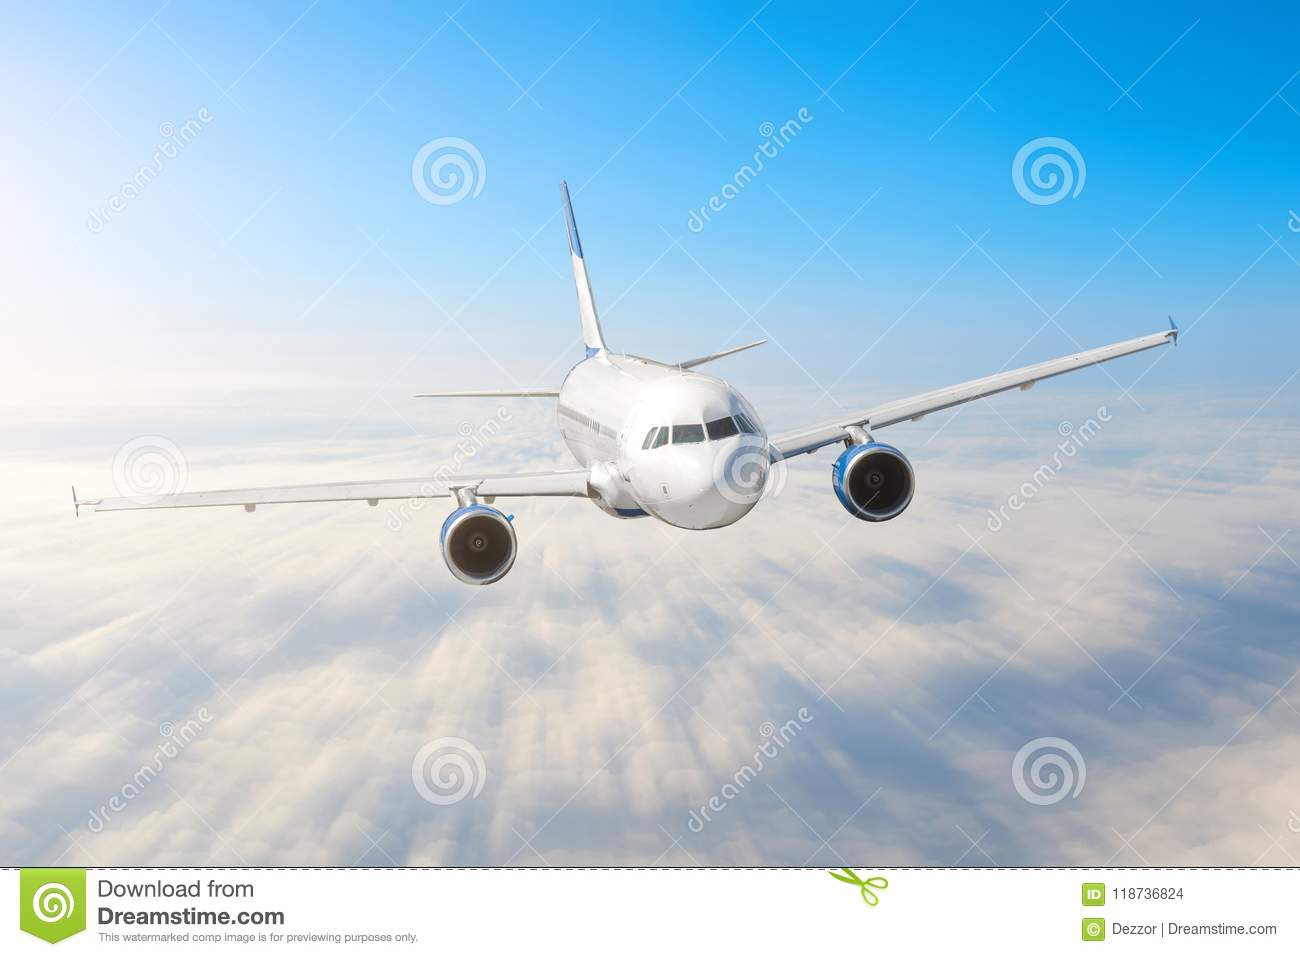 Airplane in the sky above the clouds flight journey sun height speed motion blur. Passenger commercial aircraft. Business travel.